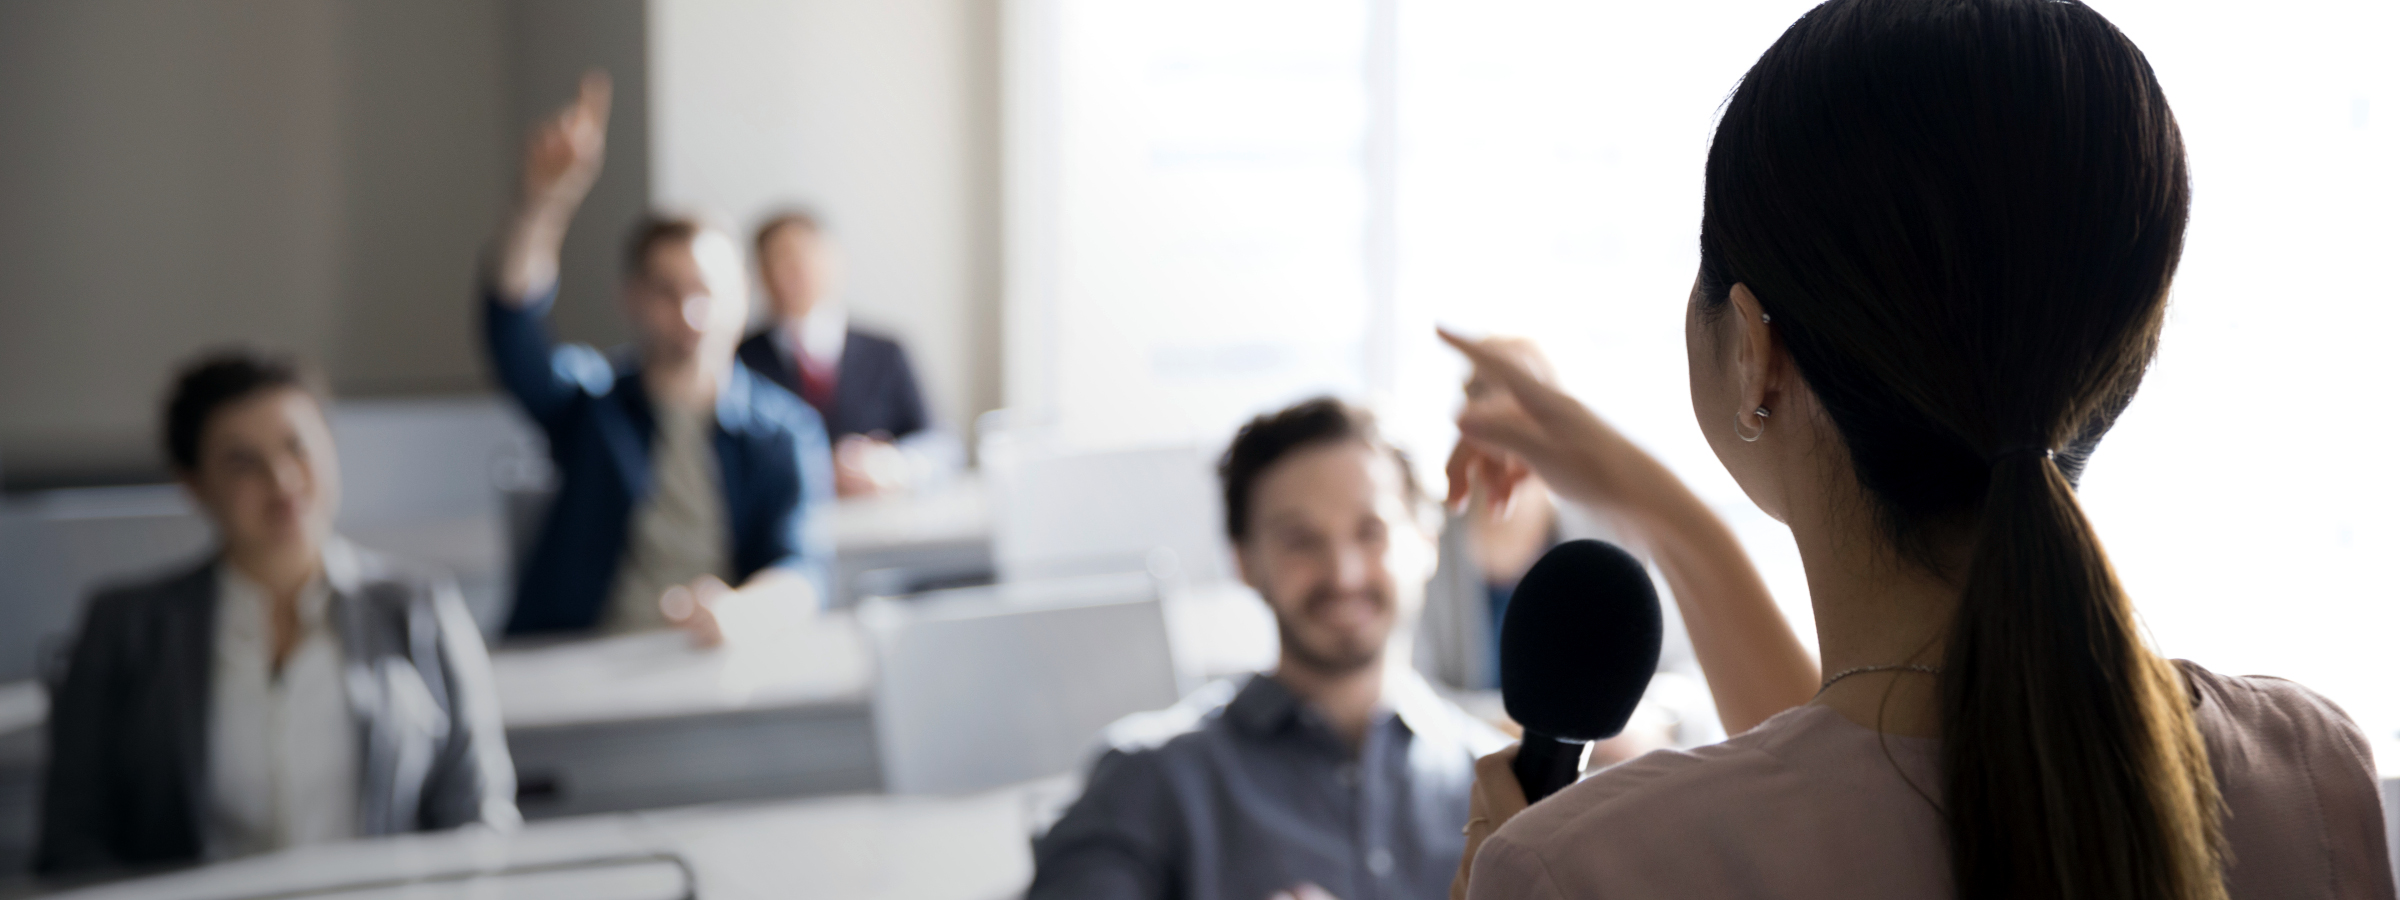 Businesswoman with microphone answering audience questions in office classroom